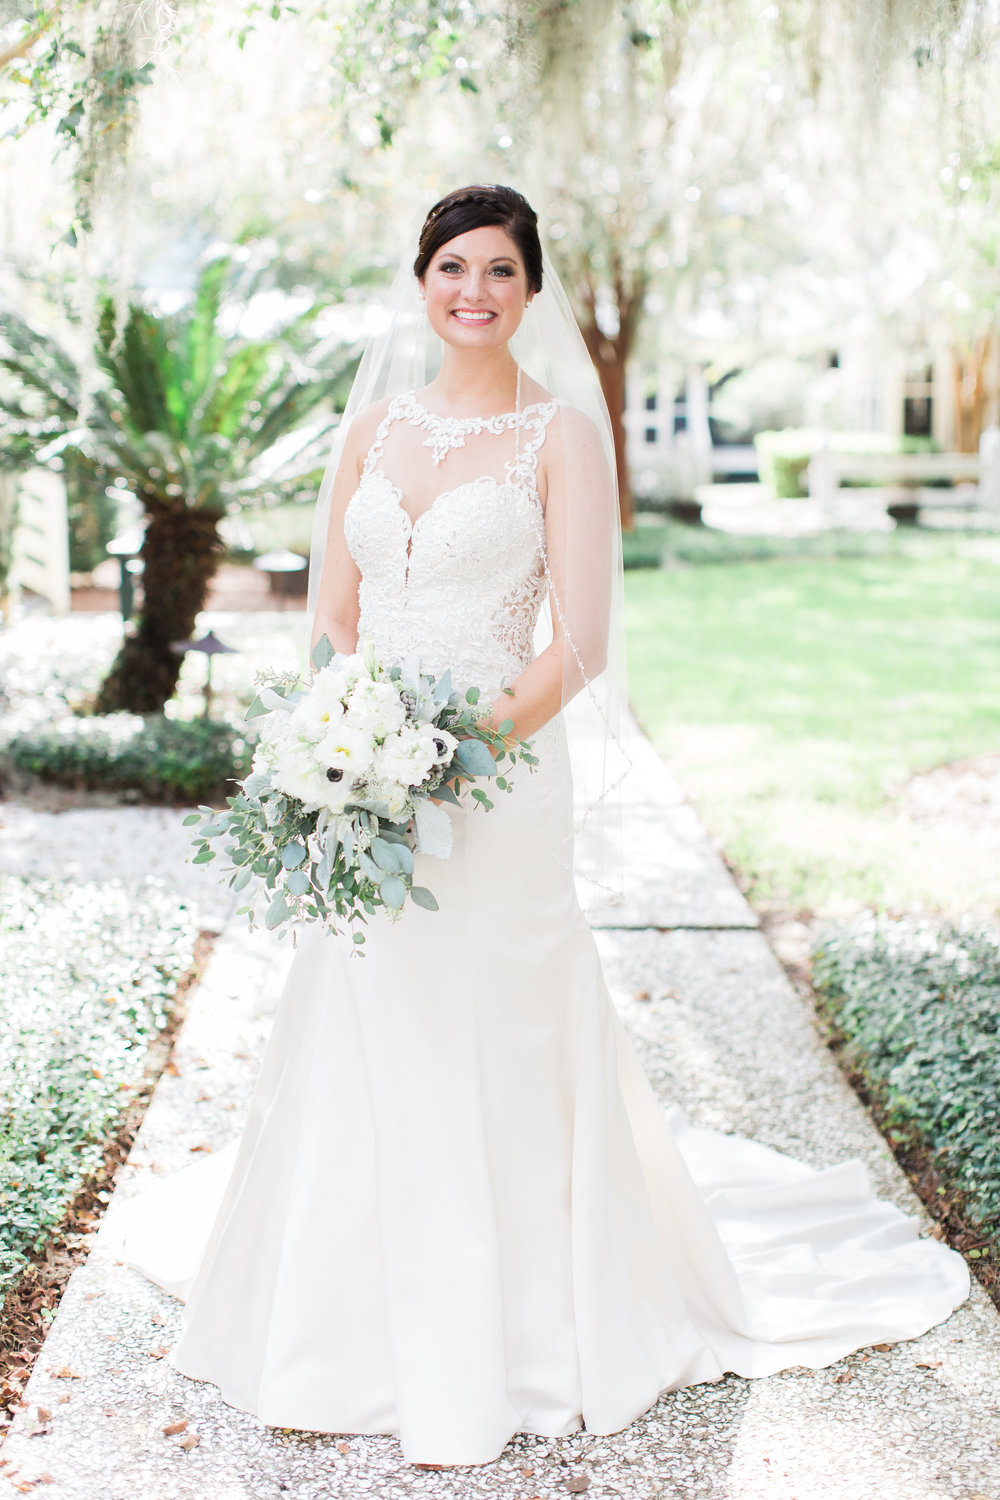 apt-b-photography-lauren-graham-oldfield-wedding-south-carolina-wedding-photographer-savannah-wedding-lowcountry-wedding-coastal-wedding-stella-york-wedding-dress-16.JPG